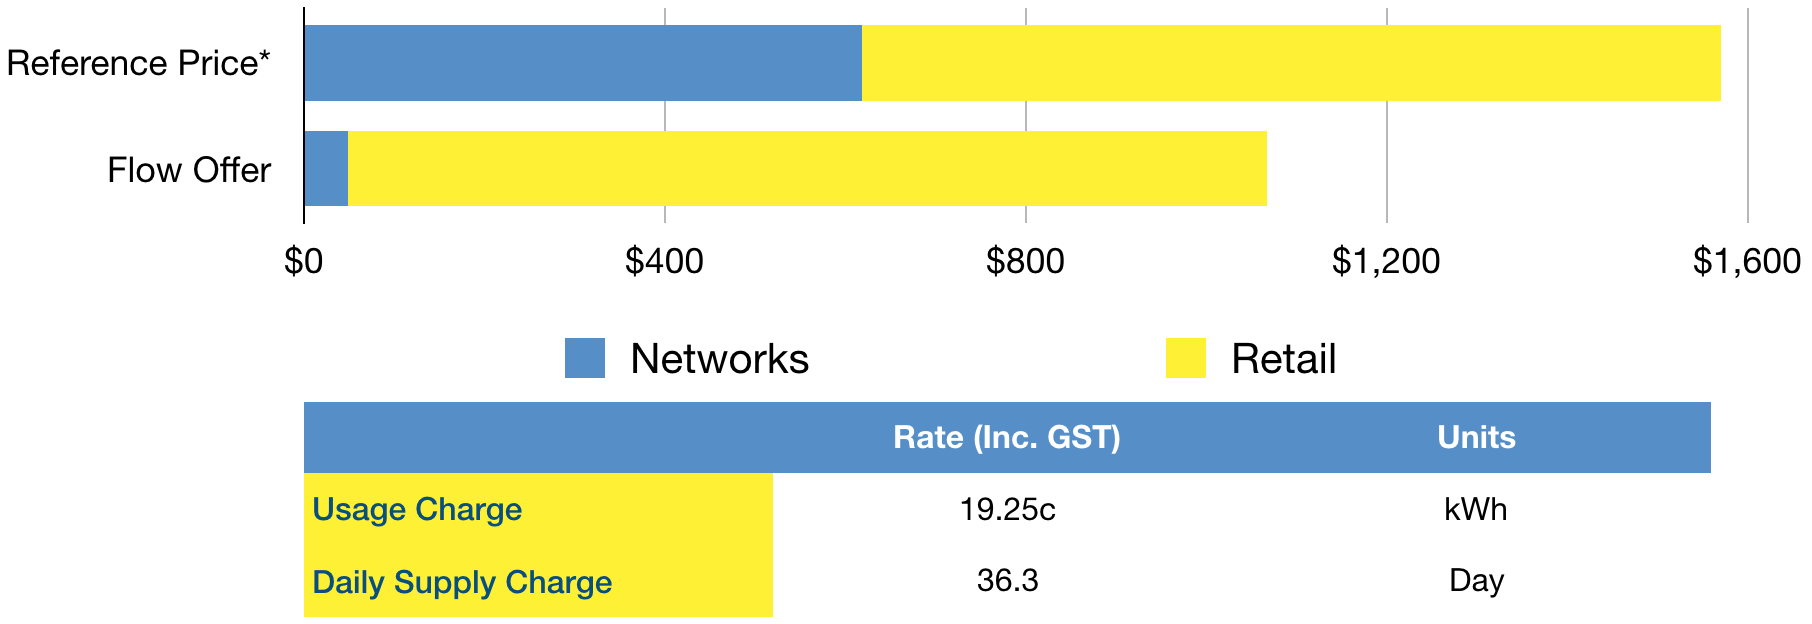 """Our analysis shows that residents at Riverscape would be paying, like for like, 35.2% less per annum on electricity than the Australian Federal Governments reasonable determination of per-customer annual energy cost. The analysis is based on the Australian Energy Regulator's per-customer consumption of 4.6MWh over a period of 365 days, otherwise known as the """"Residential Annual Usage without Controlled Load (kWh/yr)""""."""